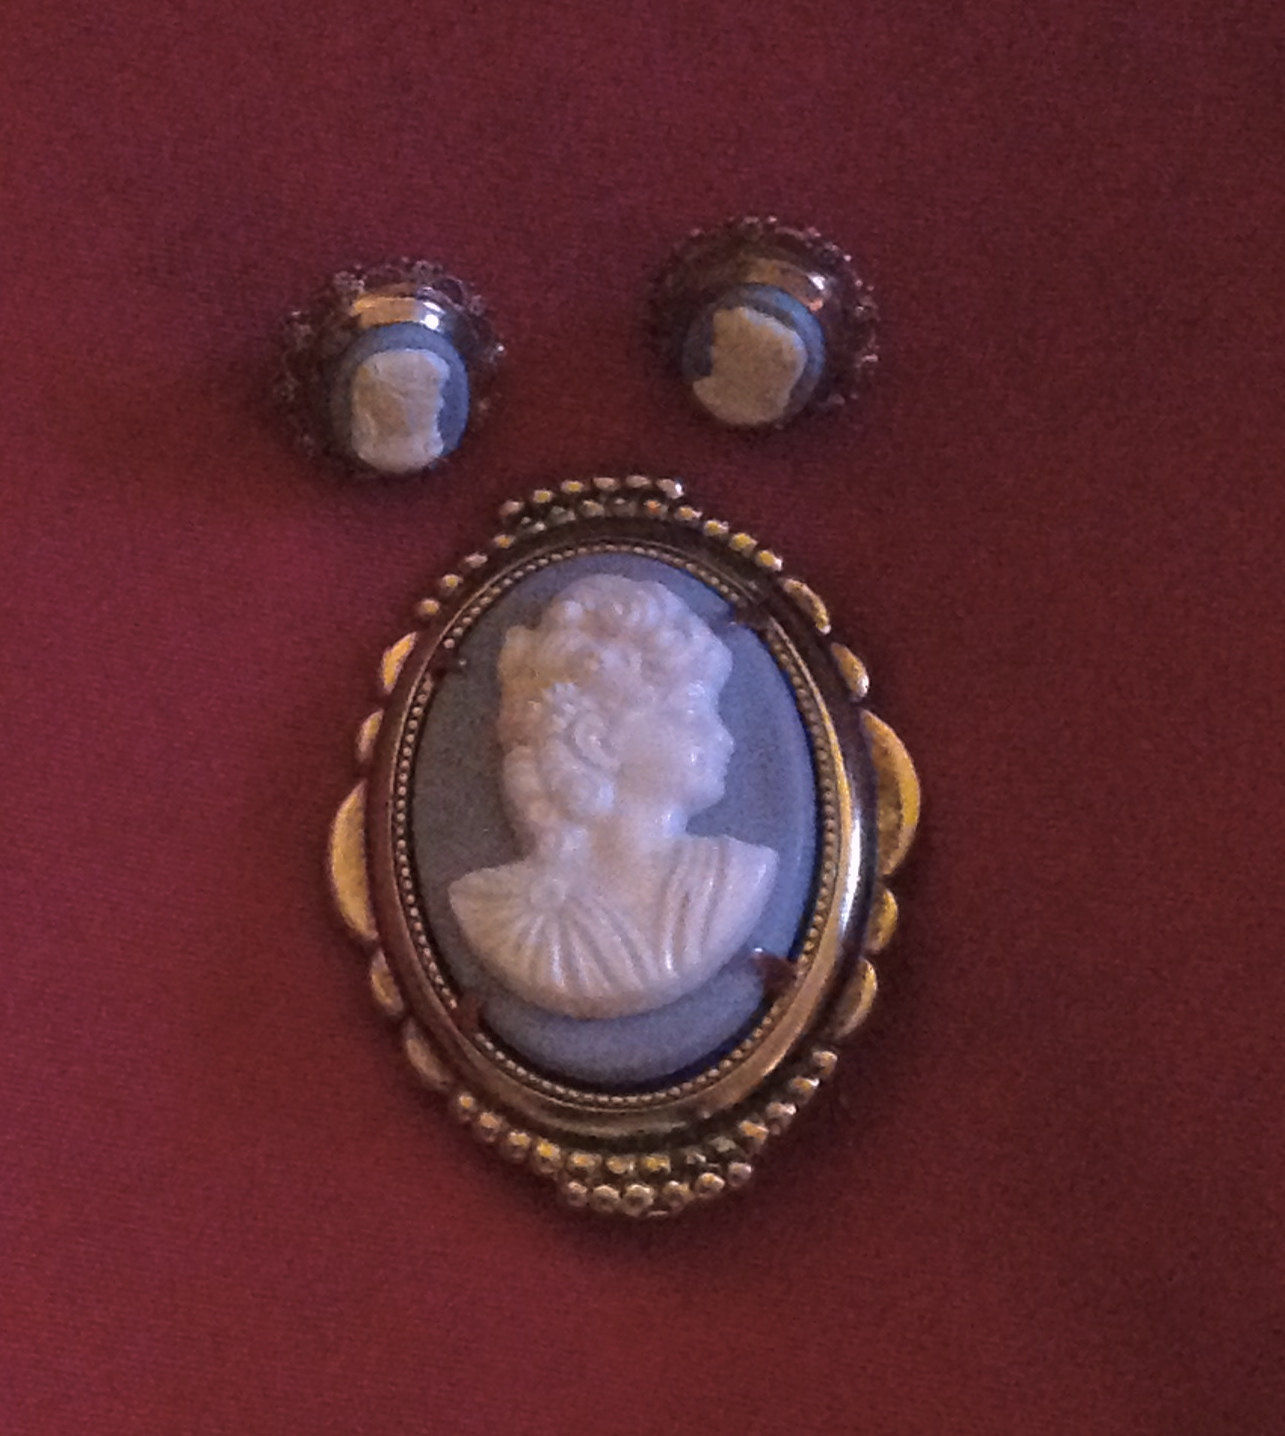 Custom Cameo Resin Pins Diy: Vintage Resin Cameo Brooch & Signed Sterling And 50